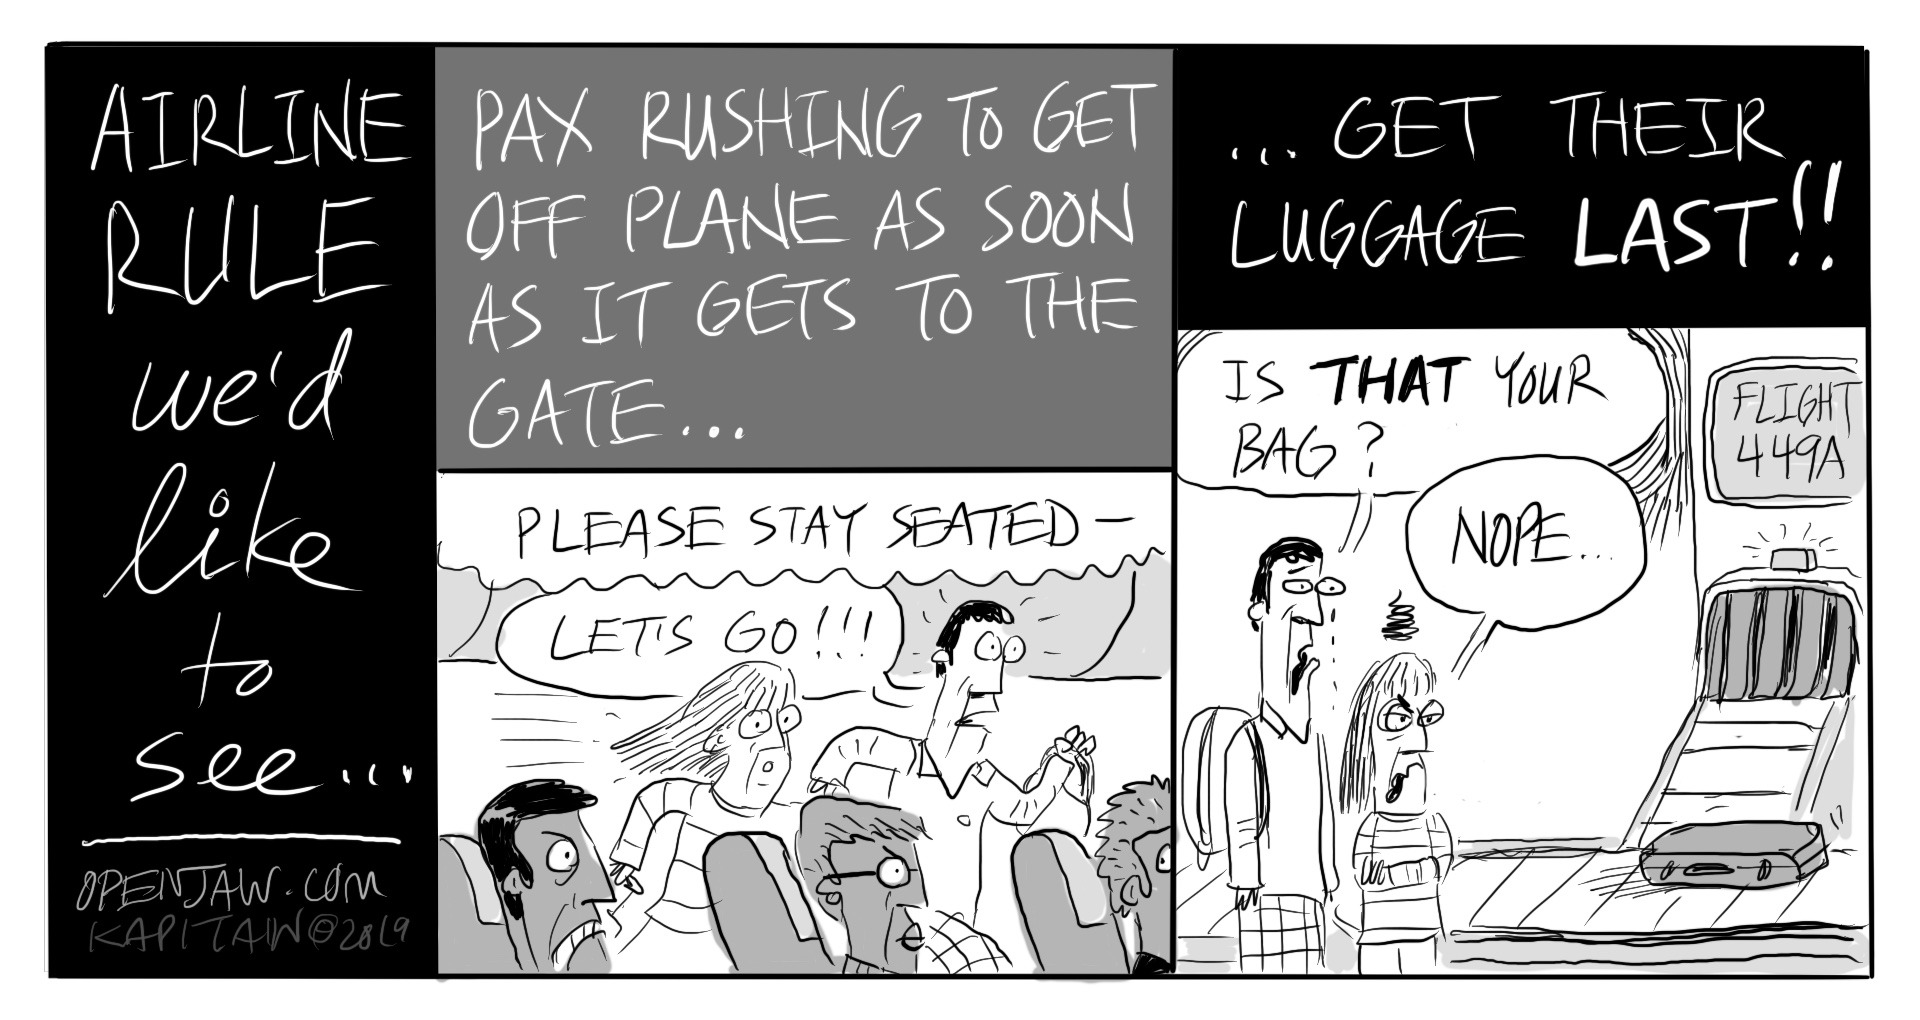 Airline Rules